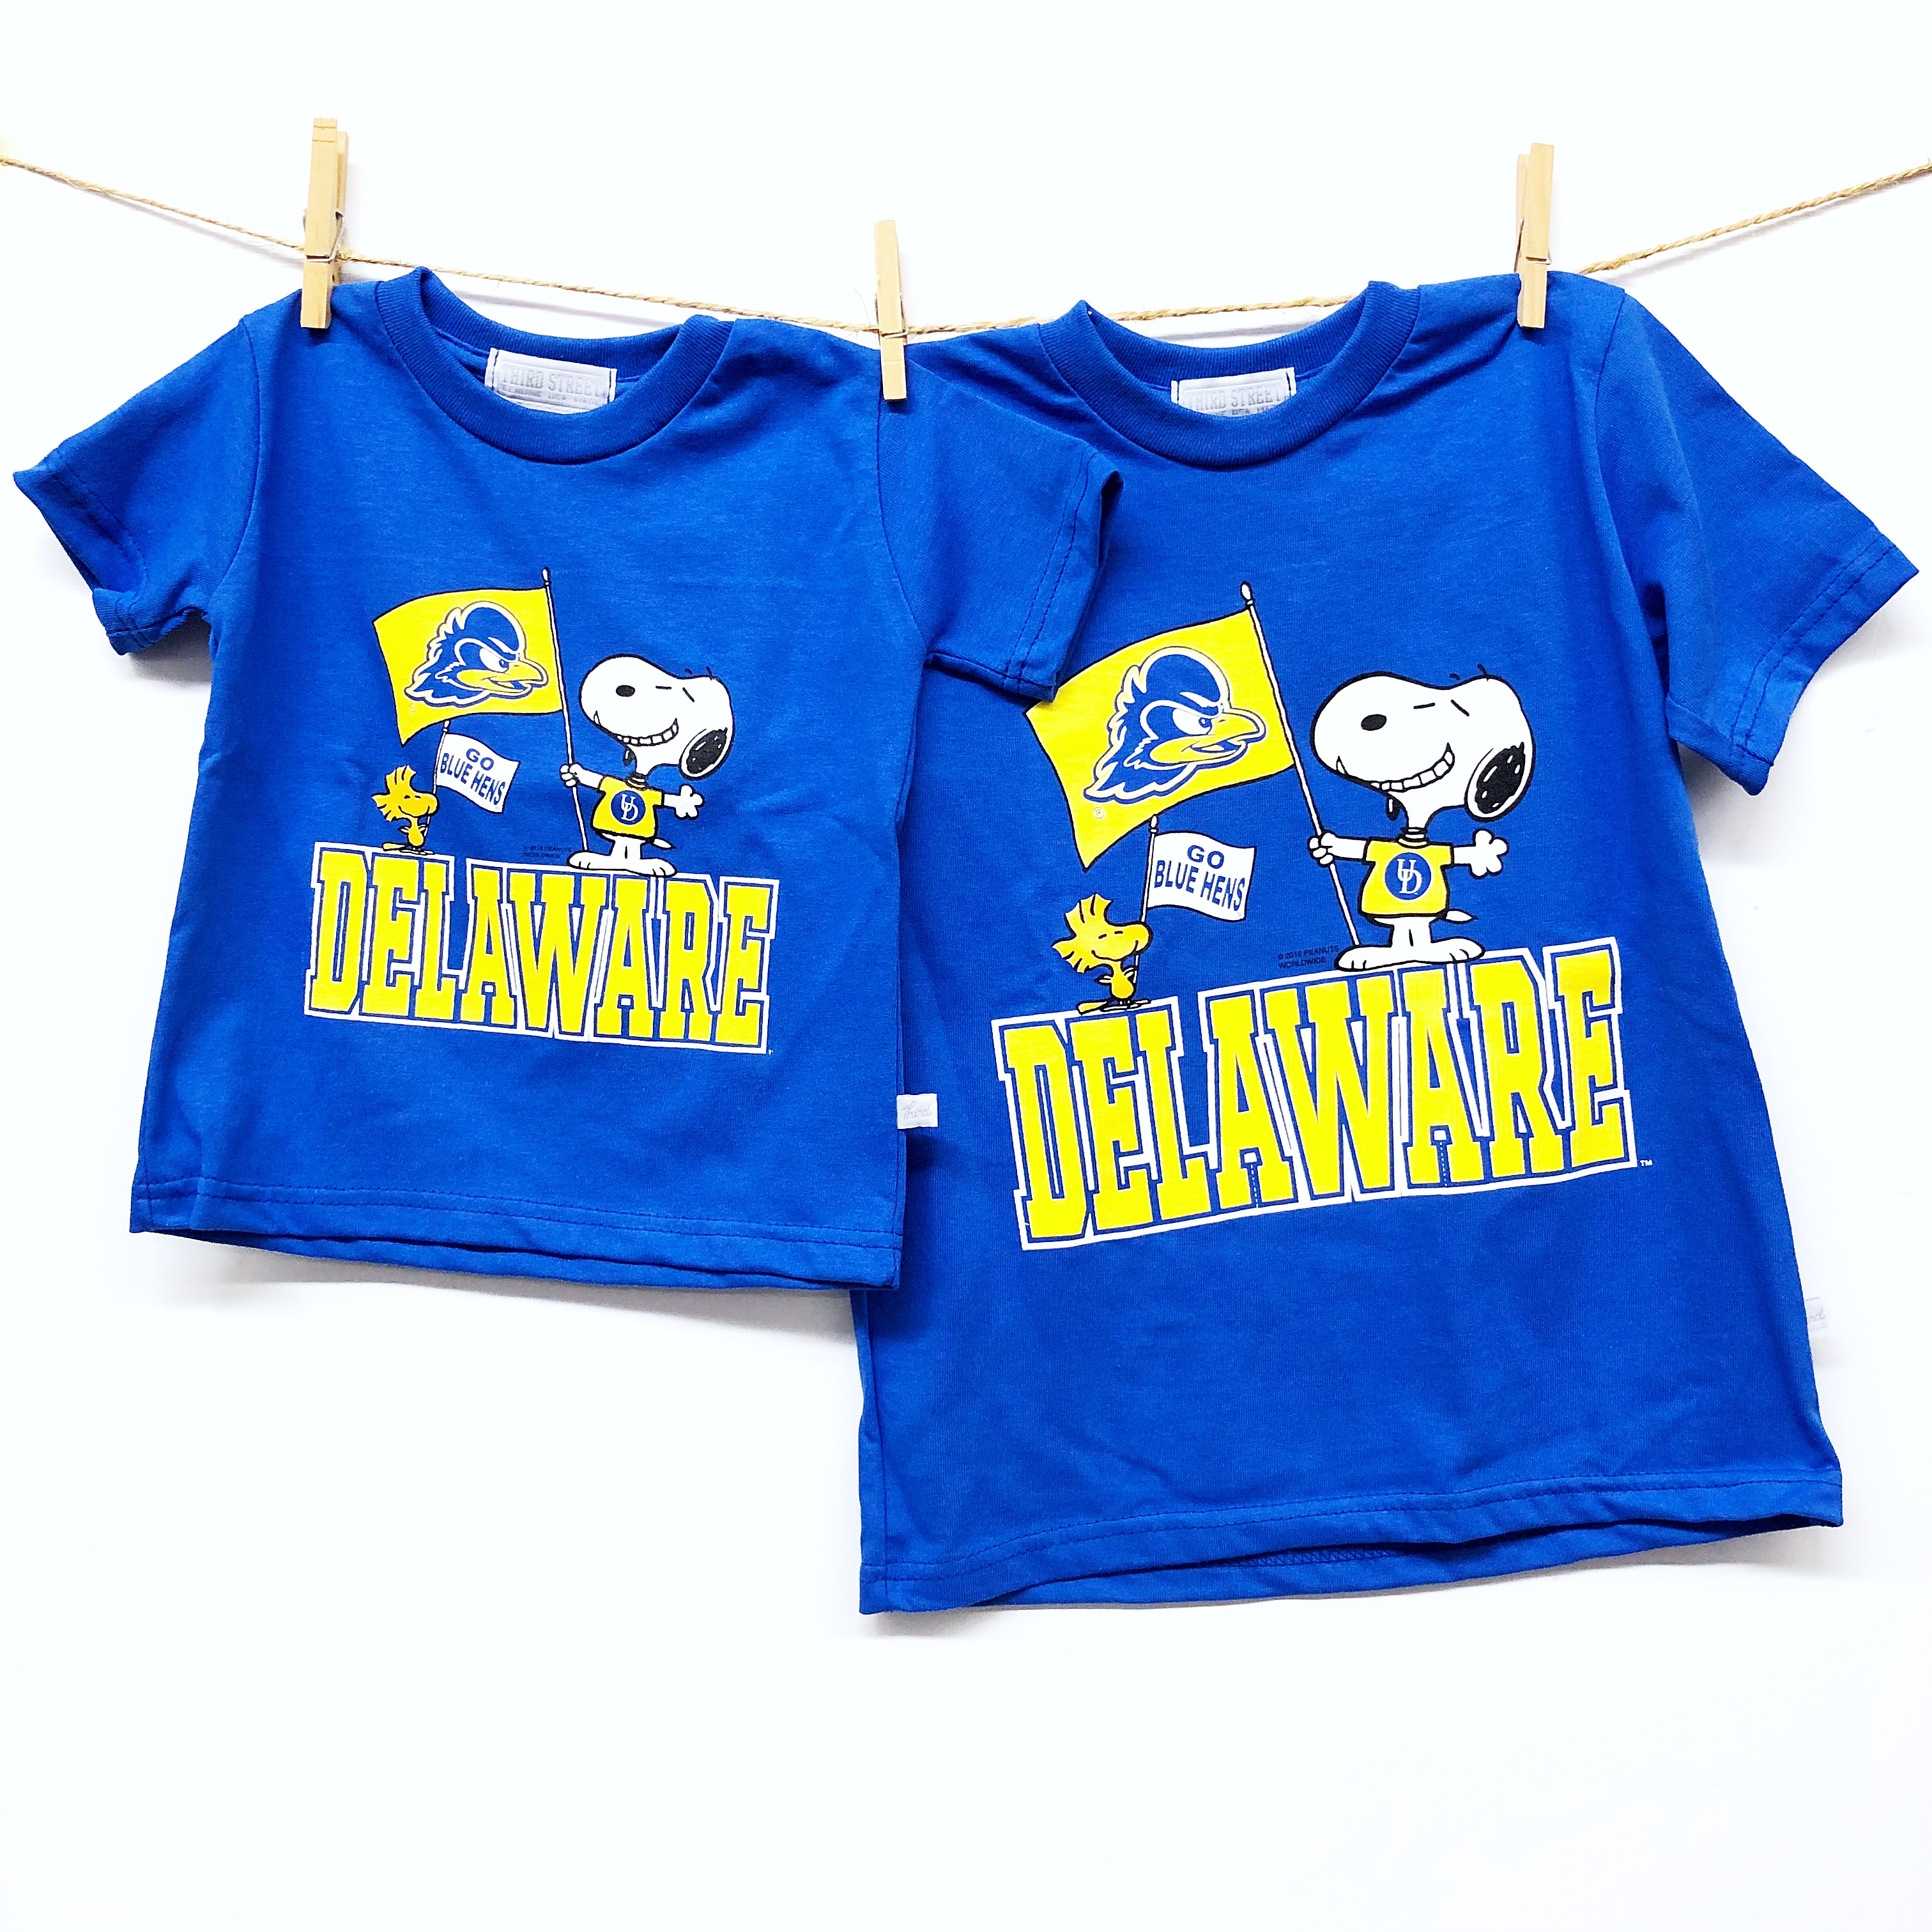 56a3631c5 University of Delaware Toddler and Youth Snoopy T-shirt – National 5 ...